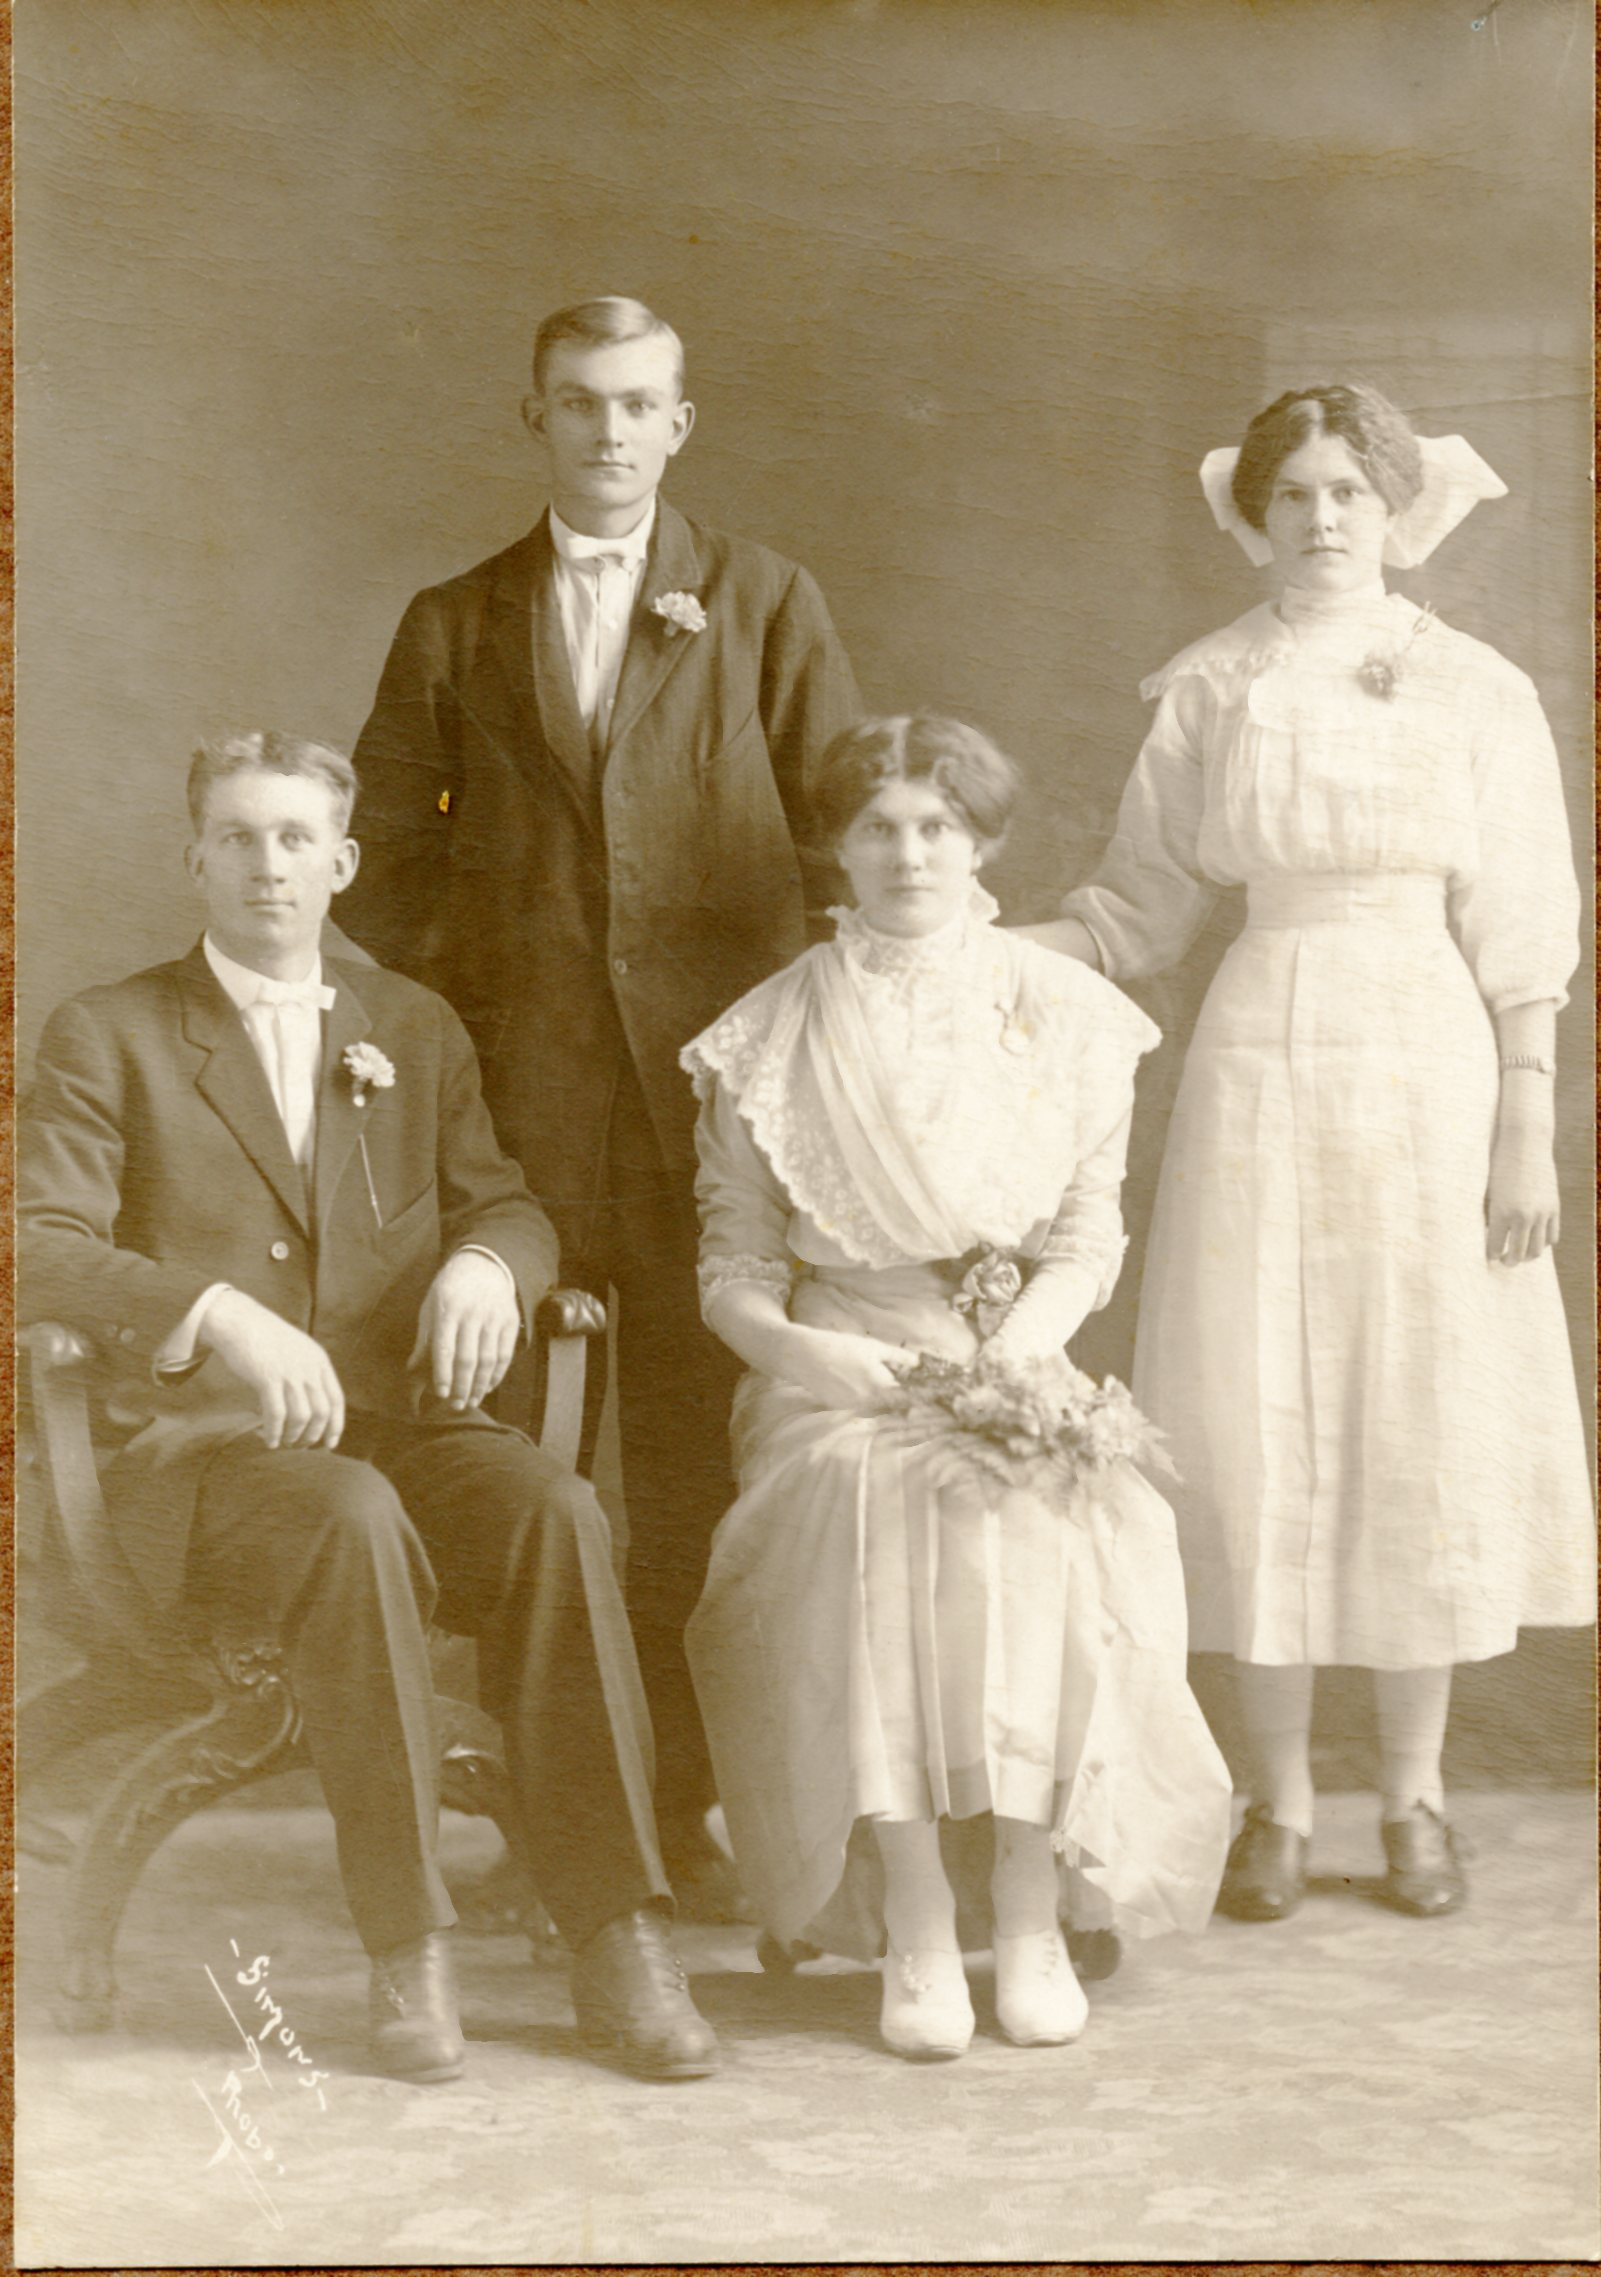 Fred and Amy with her brother Allie and sister Ella